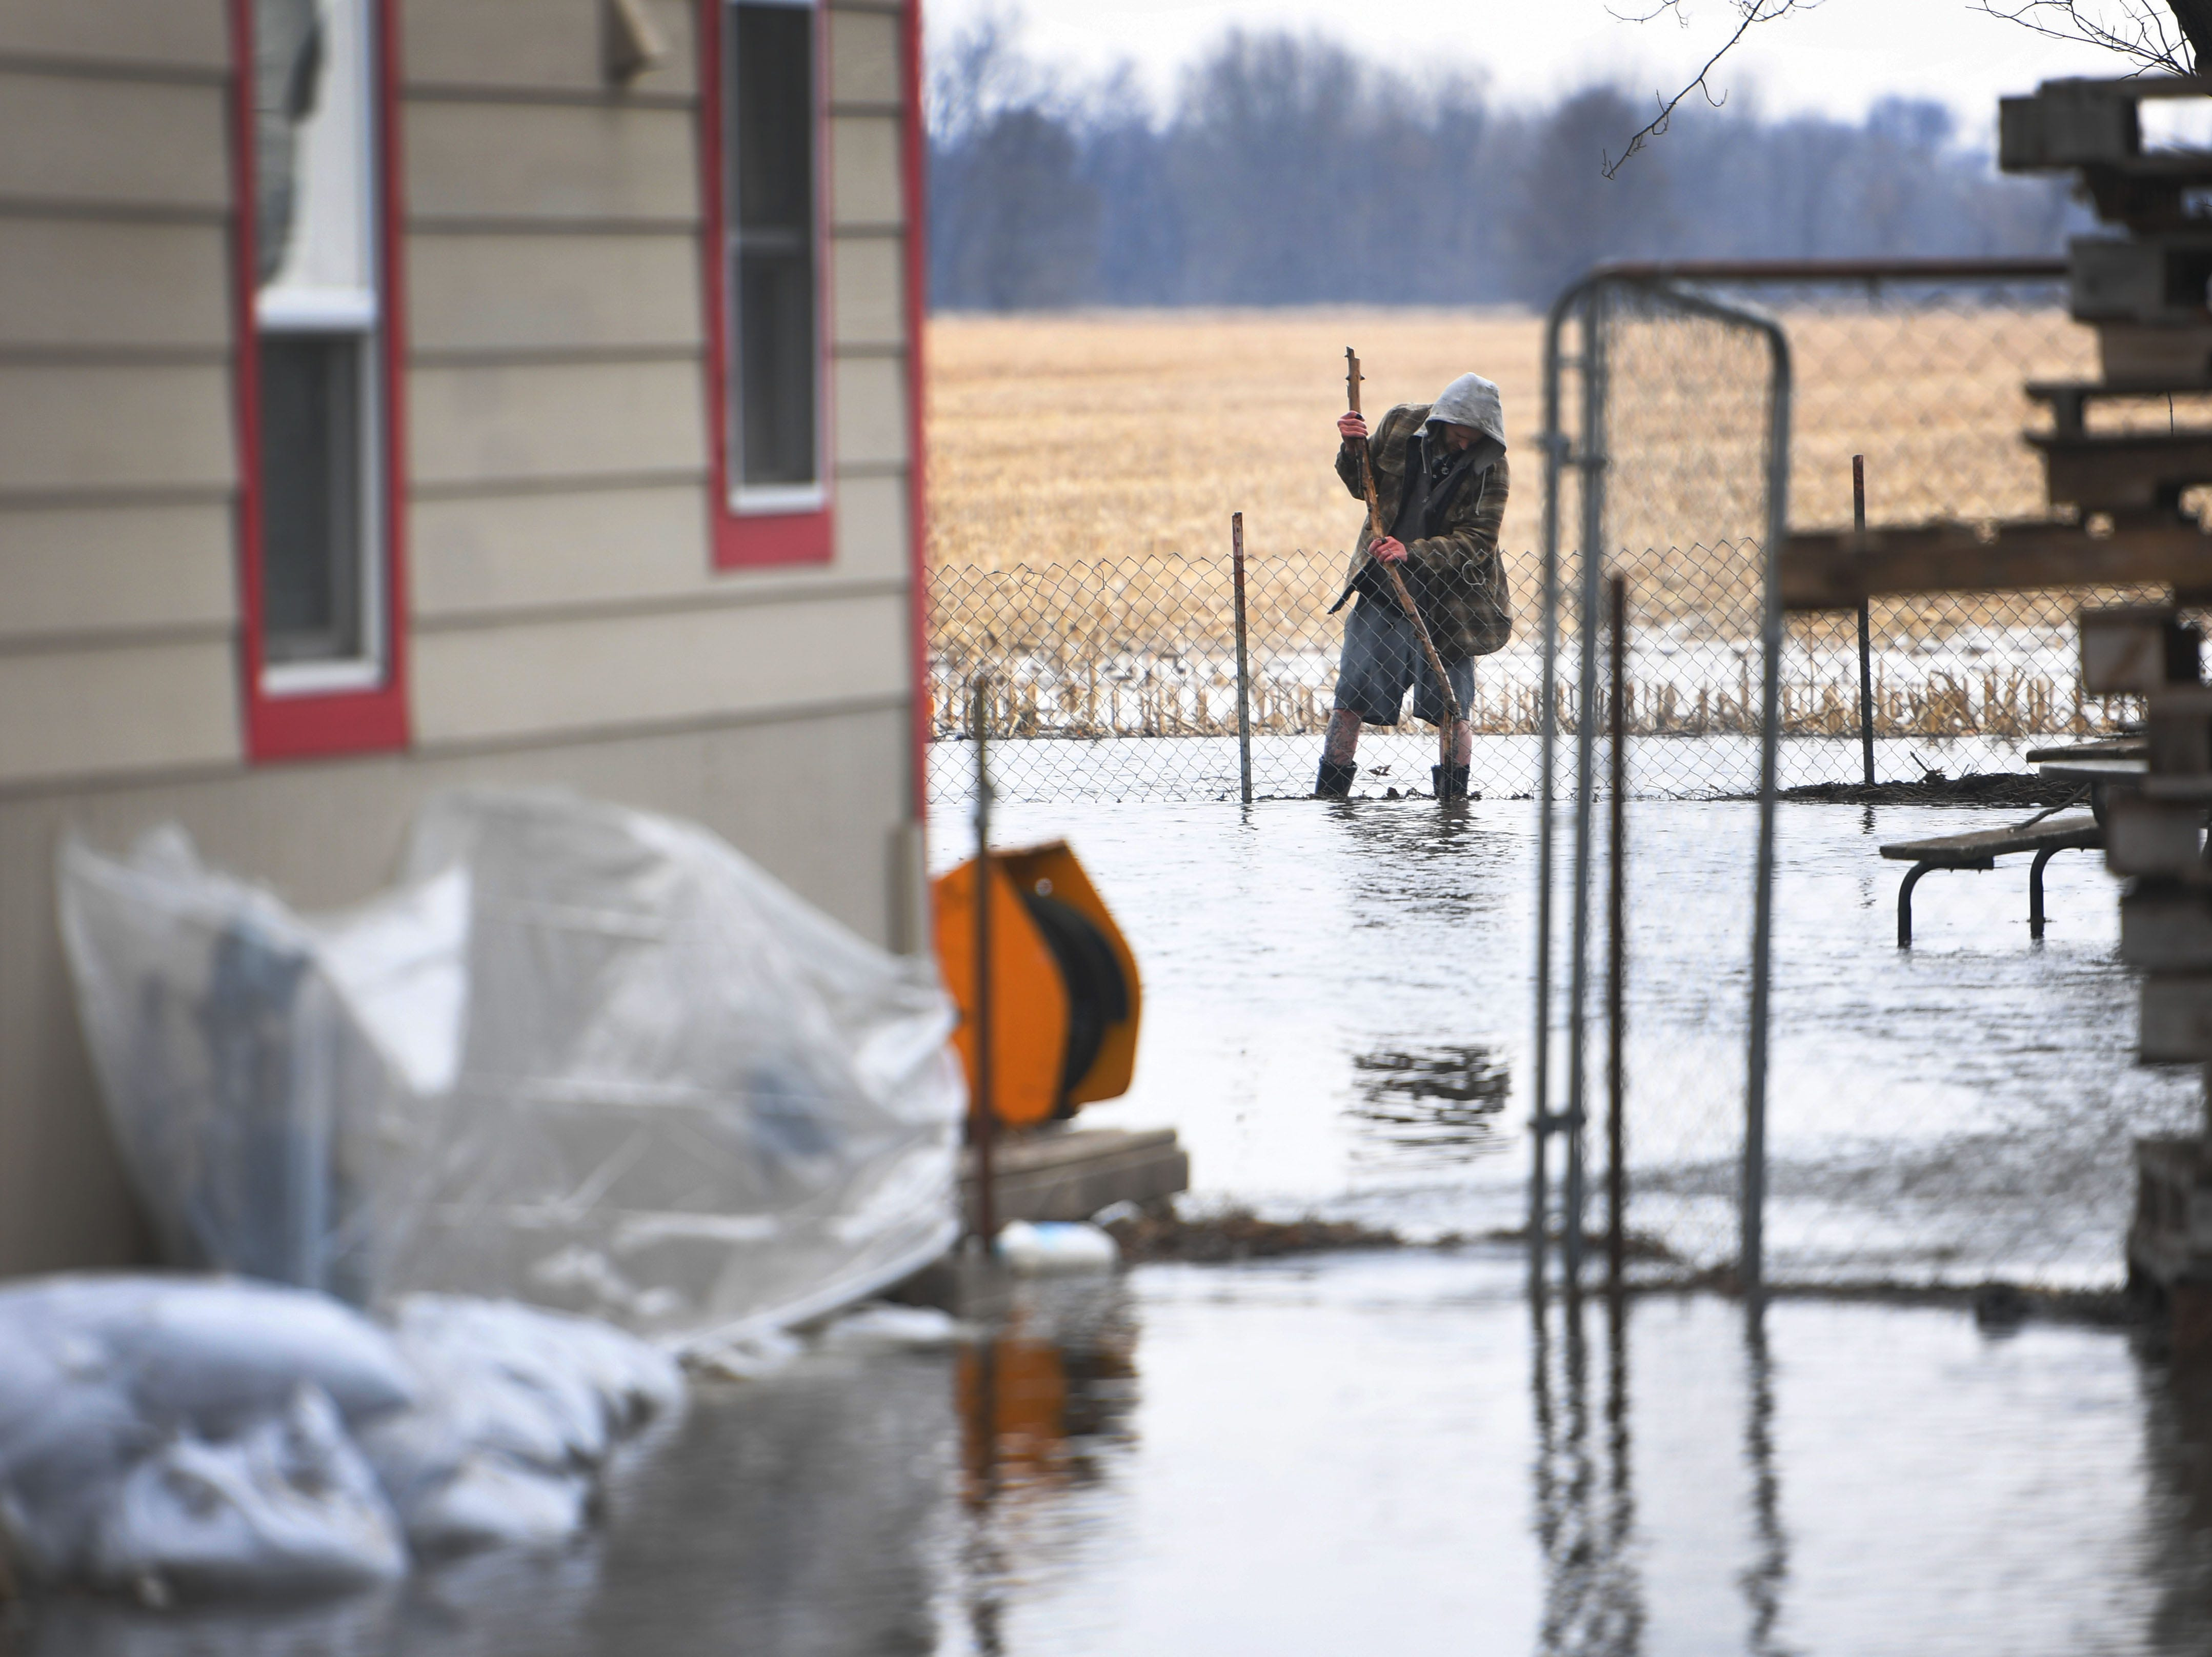 A man fixes the fencing in his backyard on 258th street as flooding continues in Renner Tuesday, March 26, in Renner, S.D. The latest river forecasts have the Big Sioux at Dell Rapids staying at 'major' flood level until early next week.